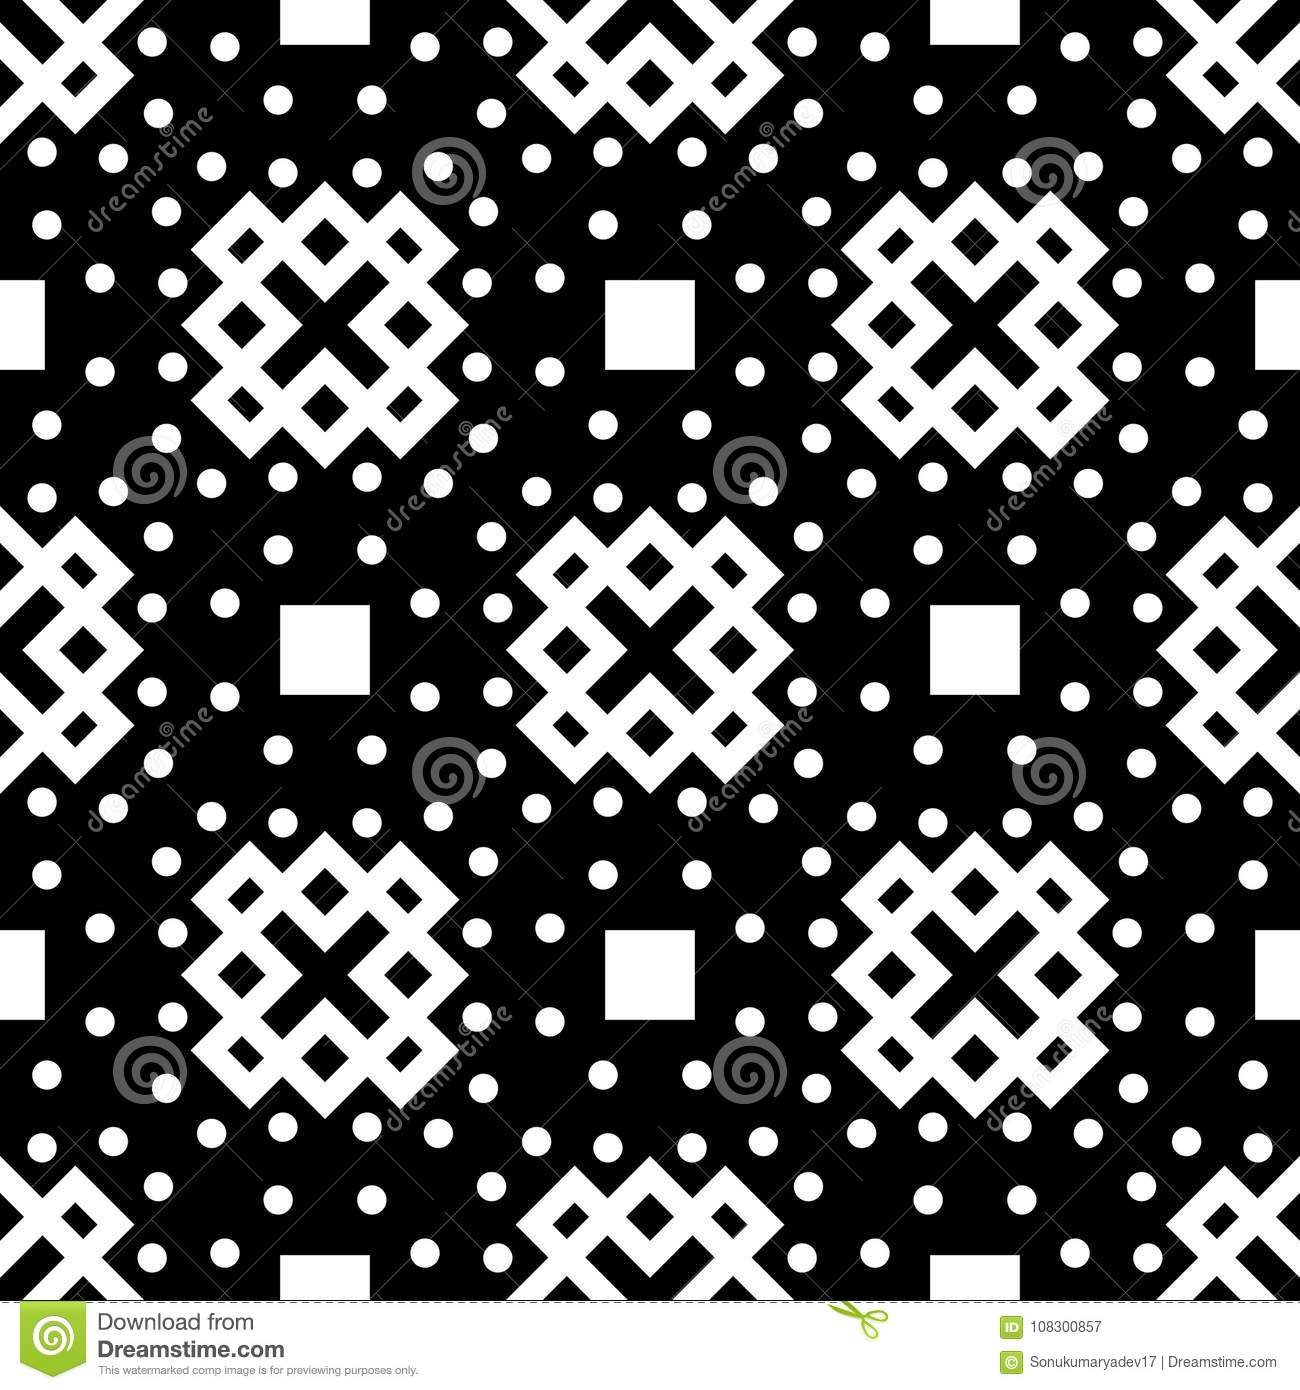 Black Background Vector Seamless Repeted Pattern Design Stock Vector ...